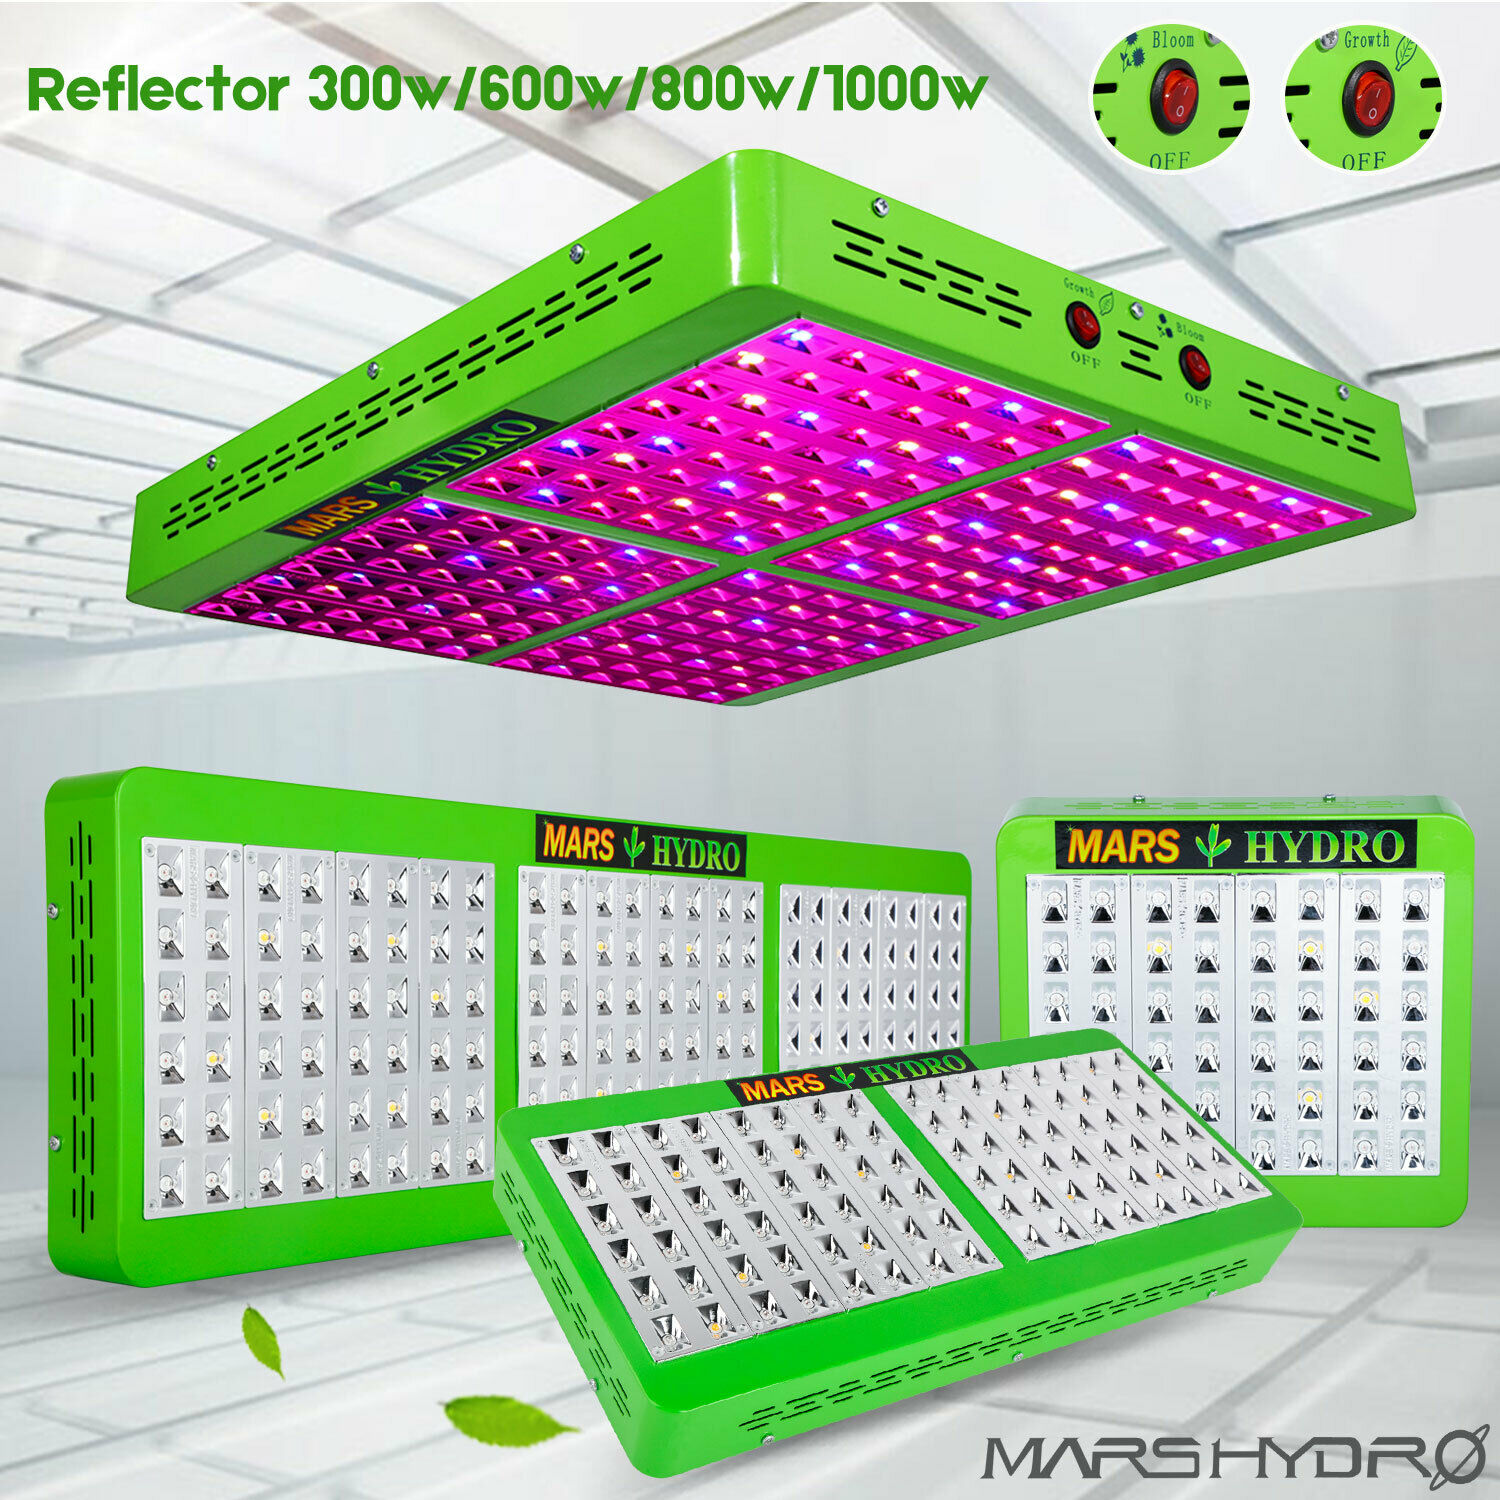 Mars Hydro Reflector 300W 600W 800W 1000W LED Grow Light Full Spectrum Indoor Hydroponics Planting Duty Free Grow Tent Plants